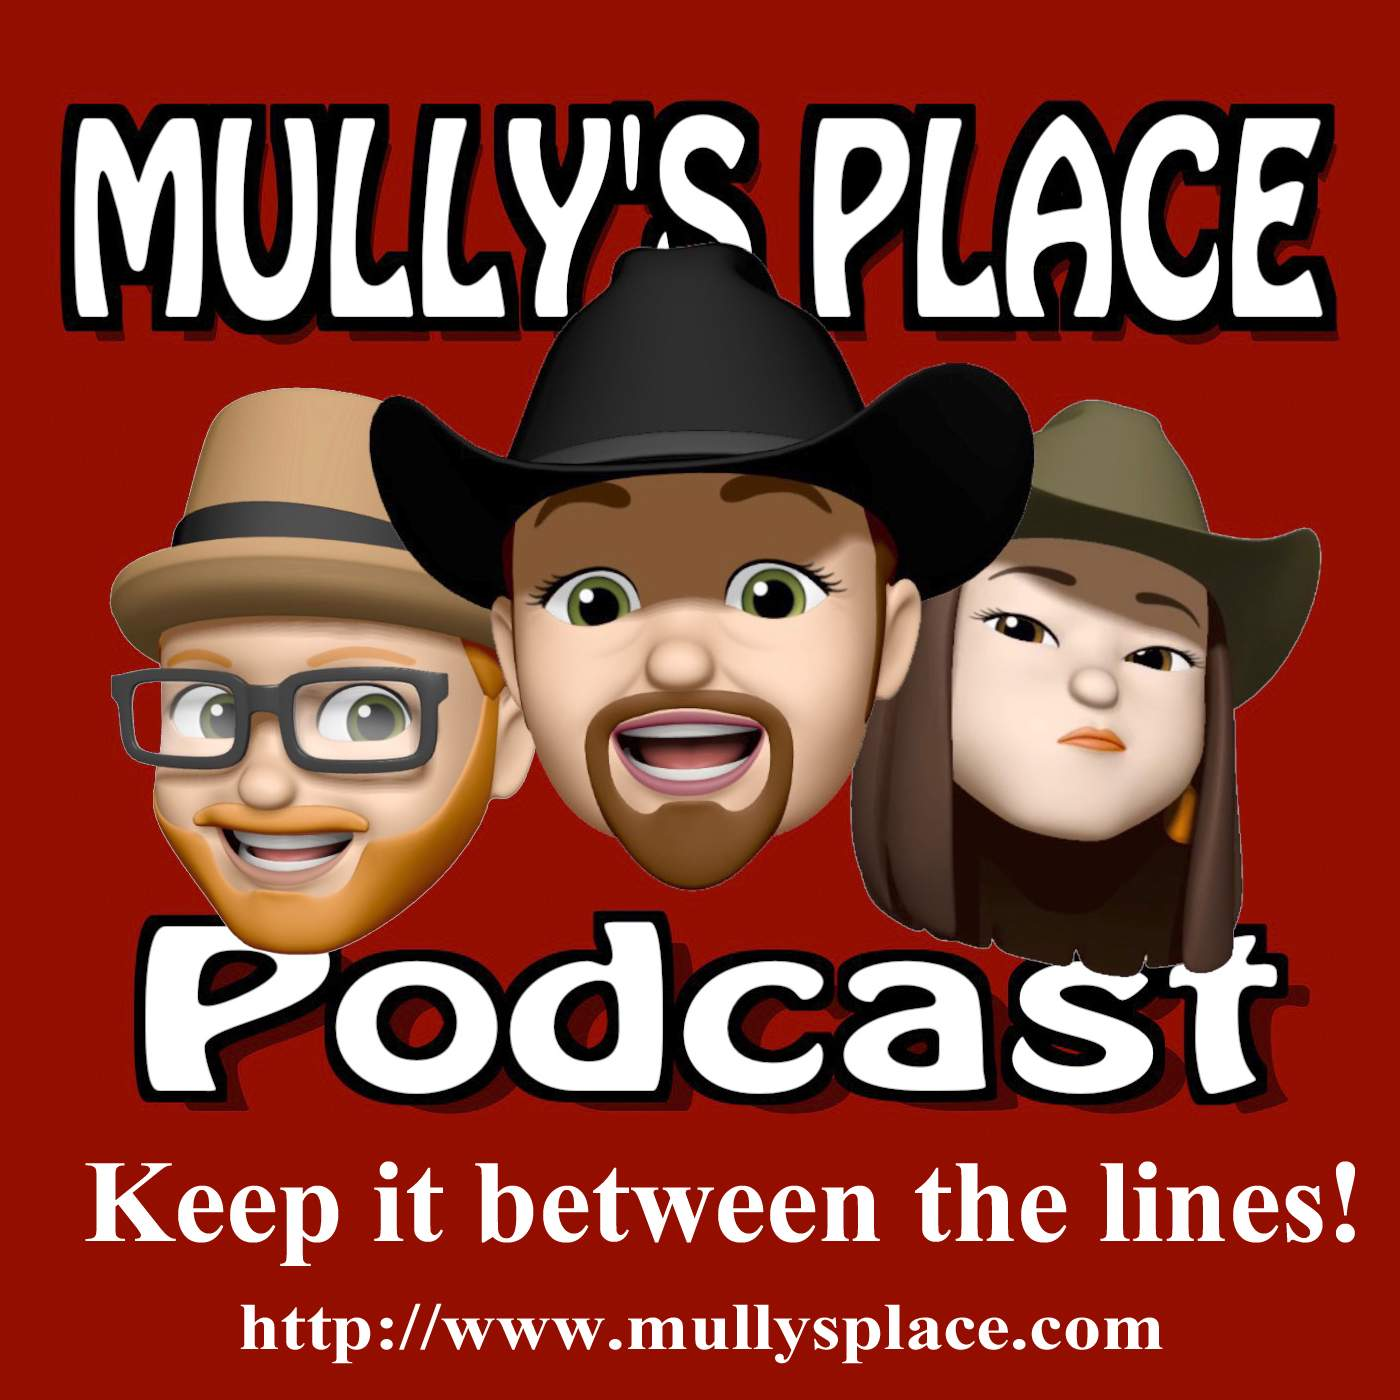 MULLY'S PLACE PODCAST